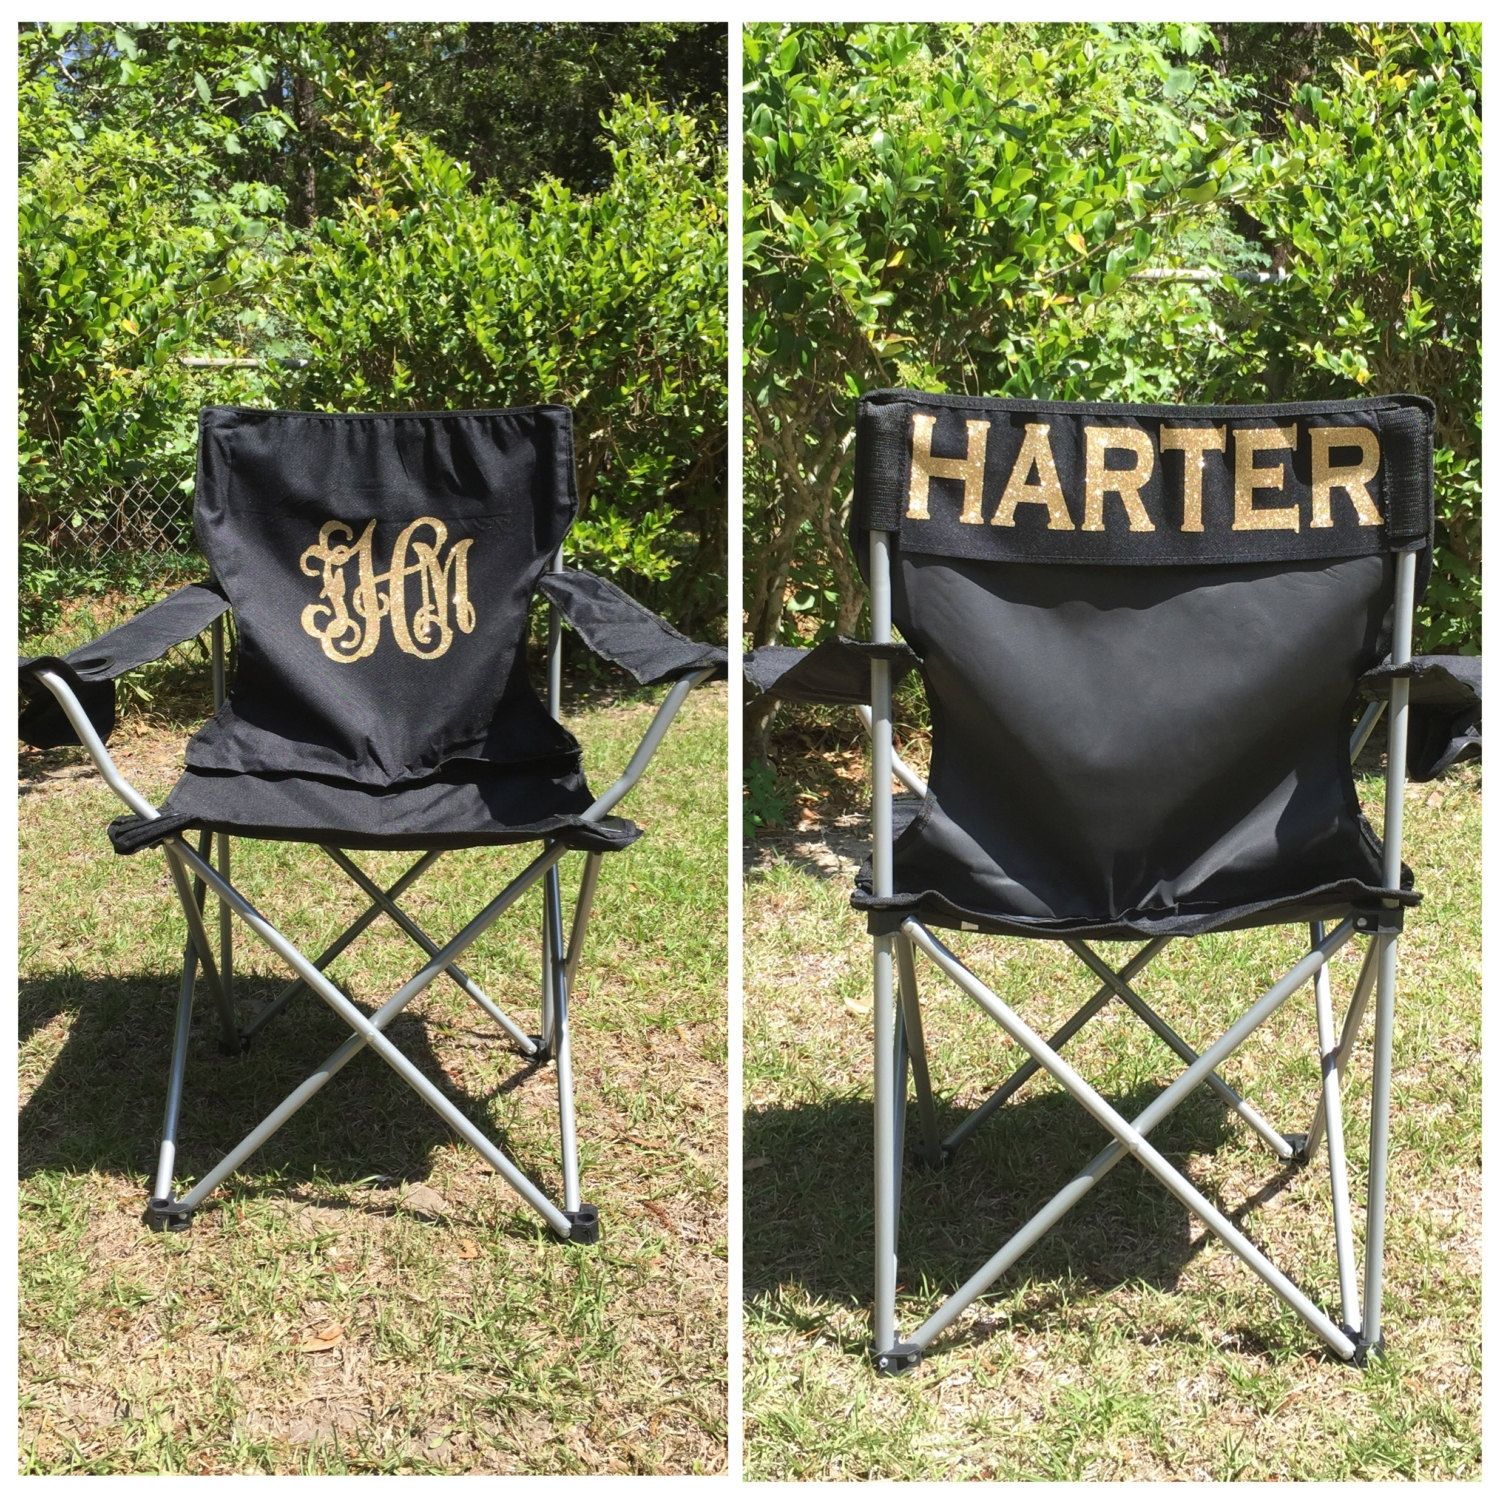 Personalized Folding Lawn Chairs Http Jeremyeatonart Com